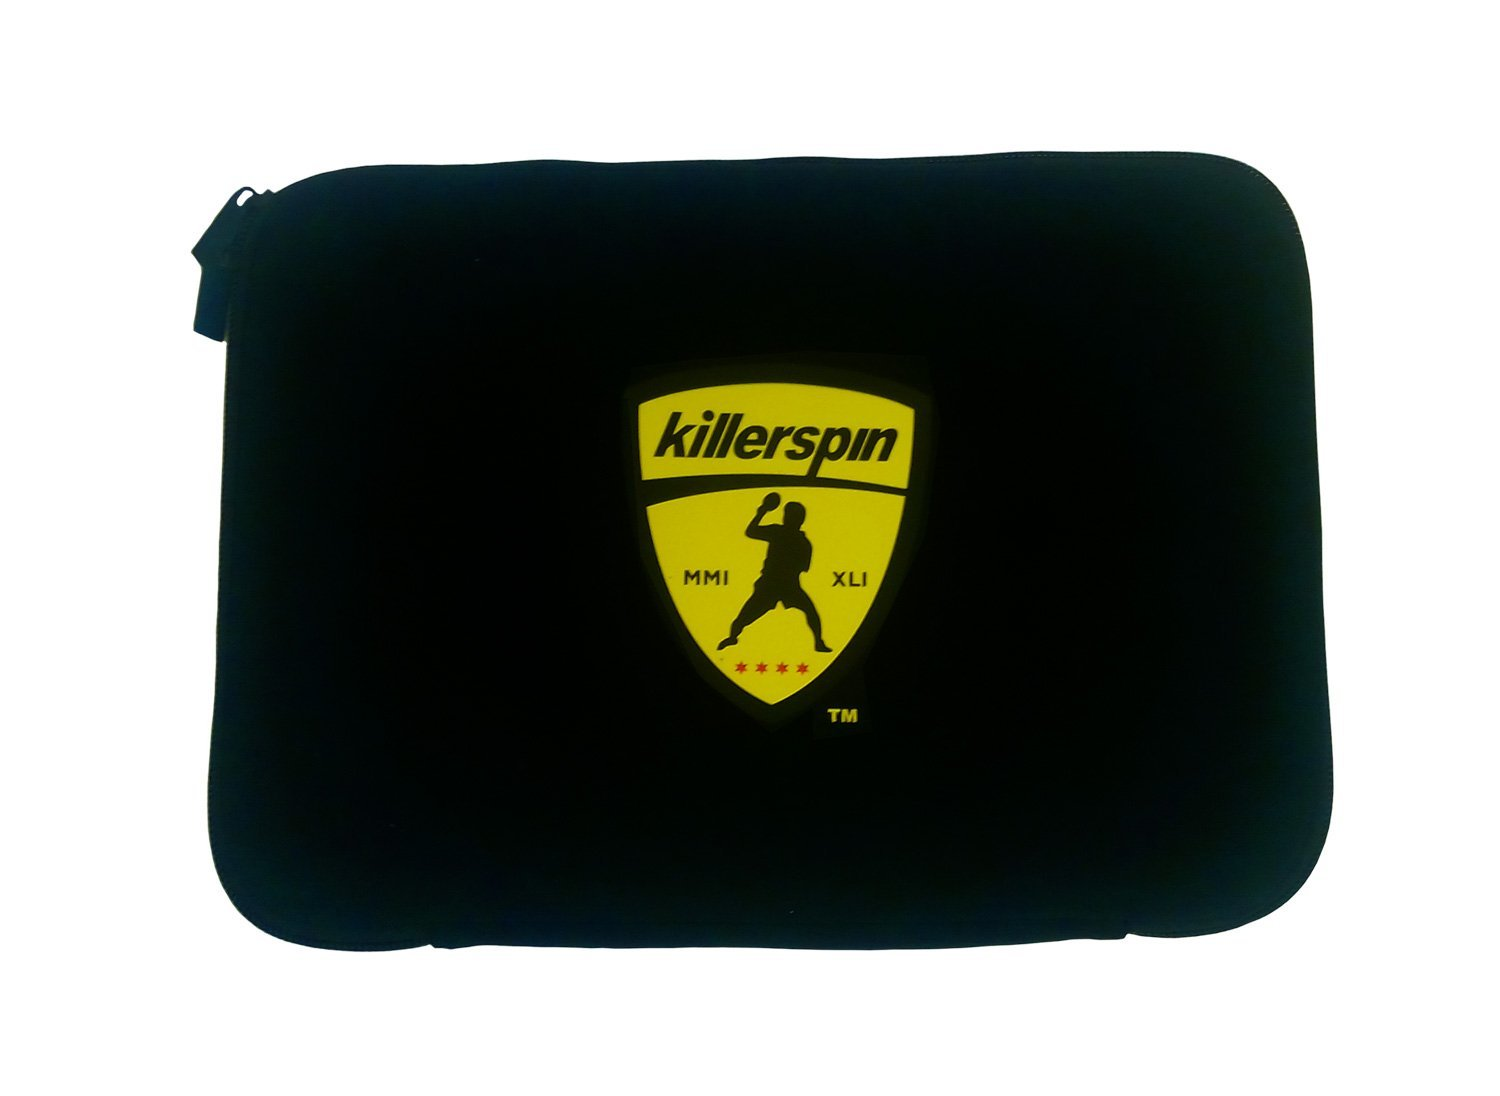 Killerspin Black sleeve Table Tennis Paddle Bag - Ping Pong Case for 4 Paddles Secured With Elastic Fastener